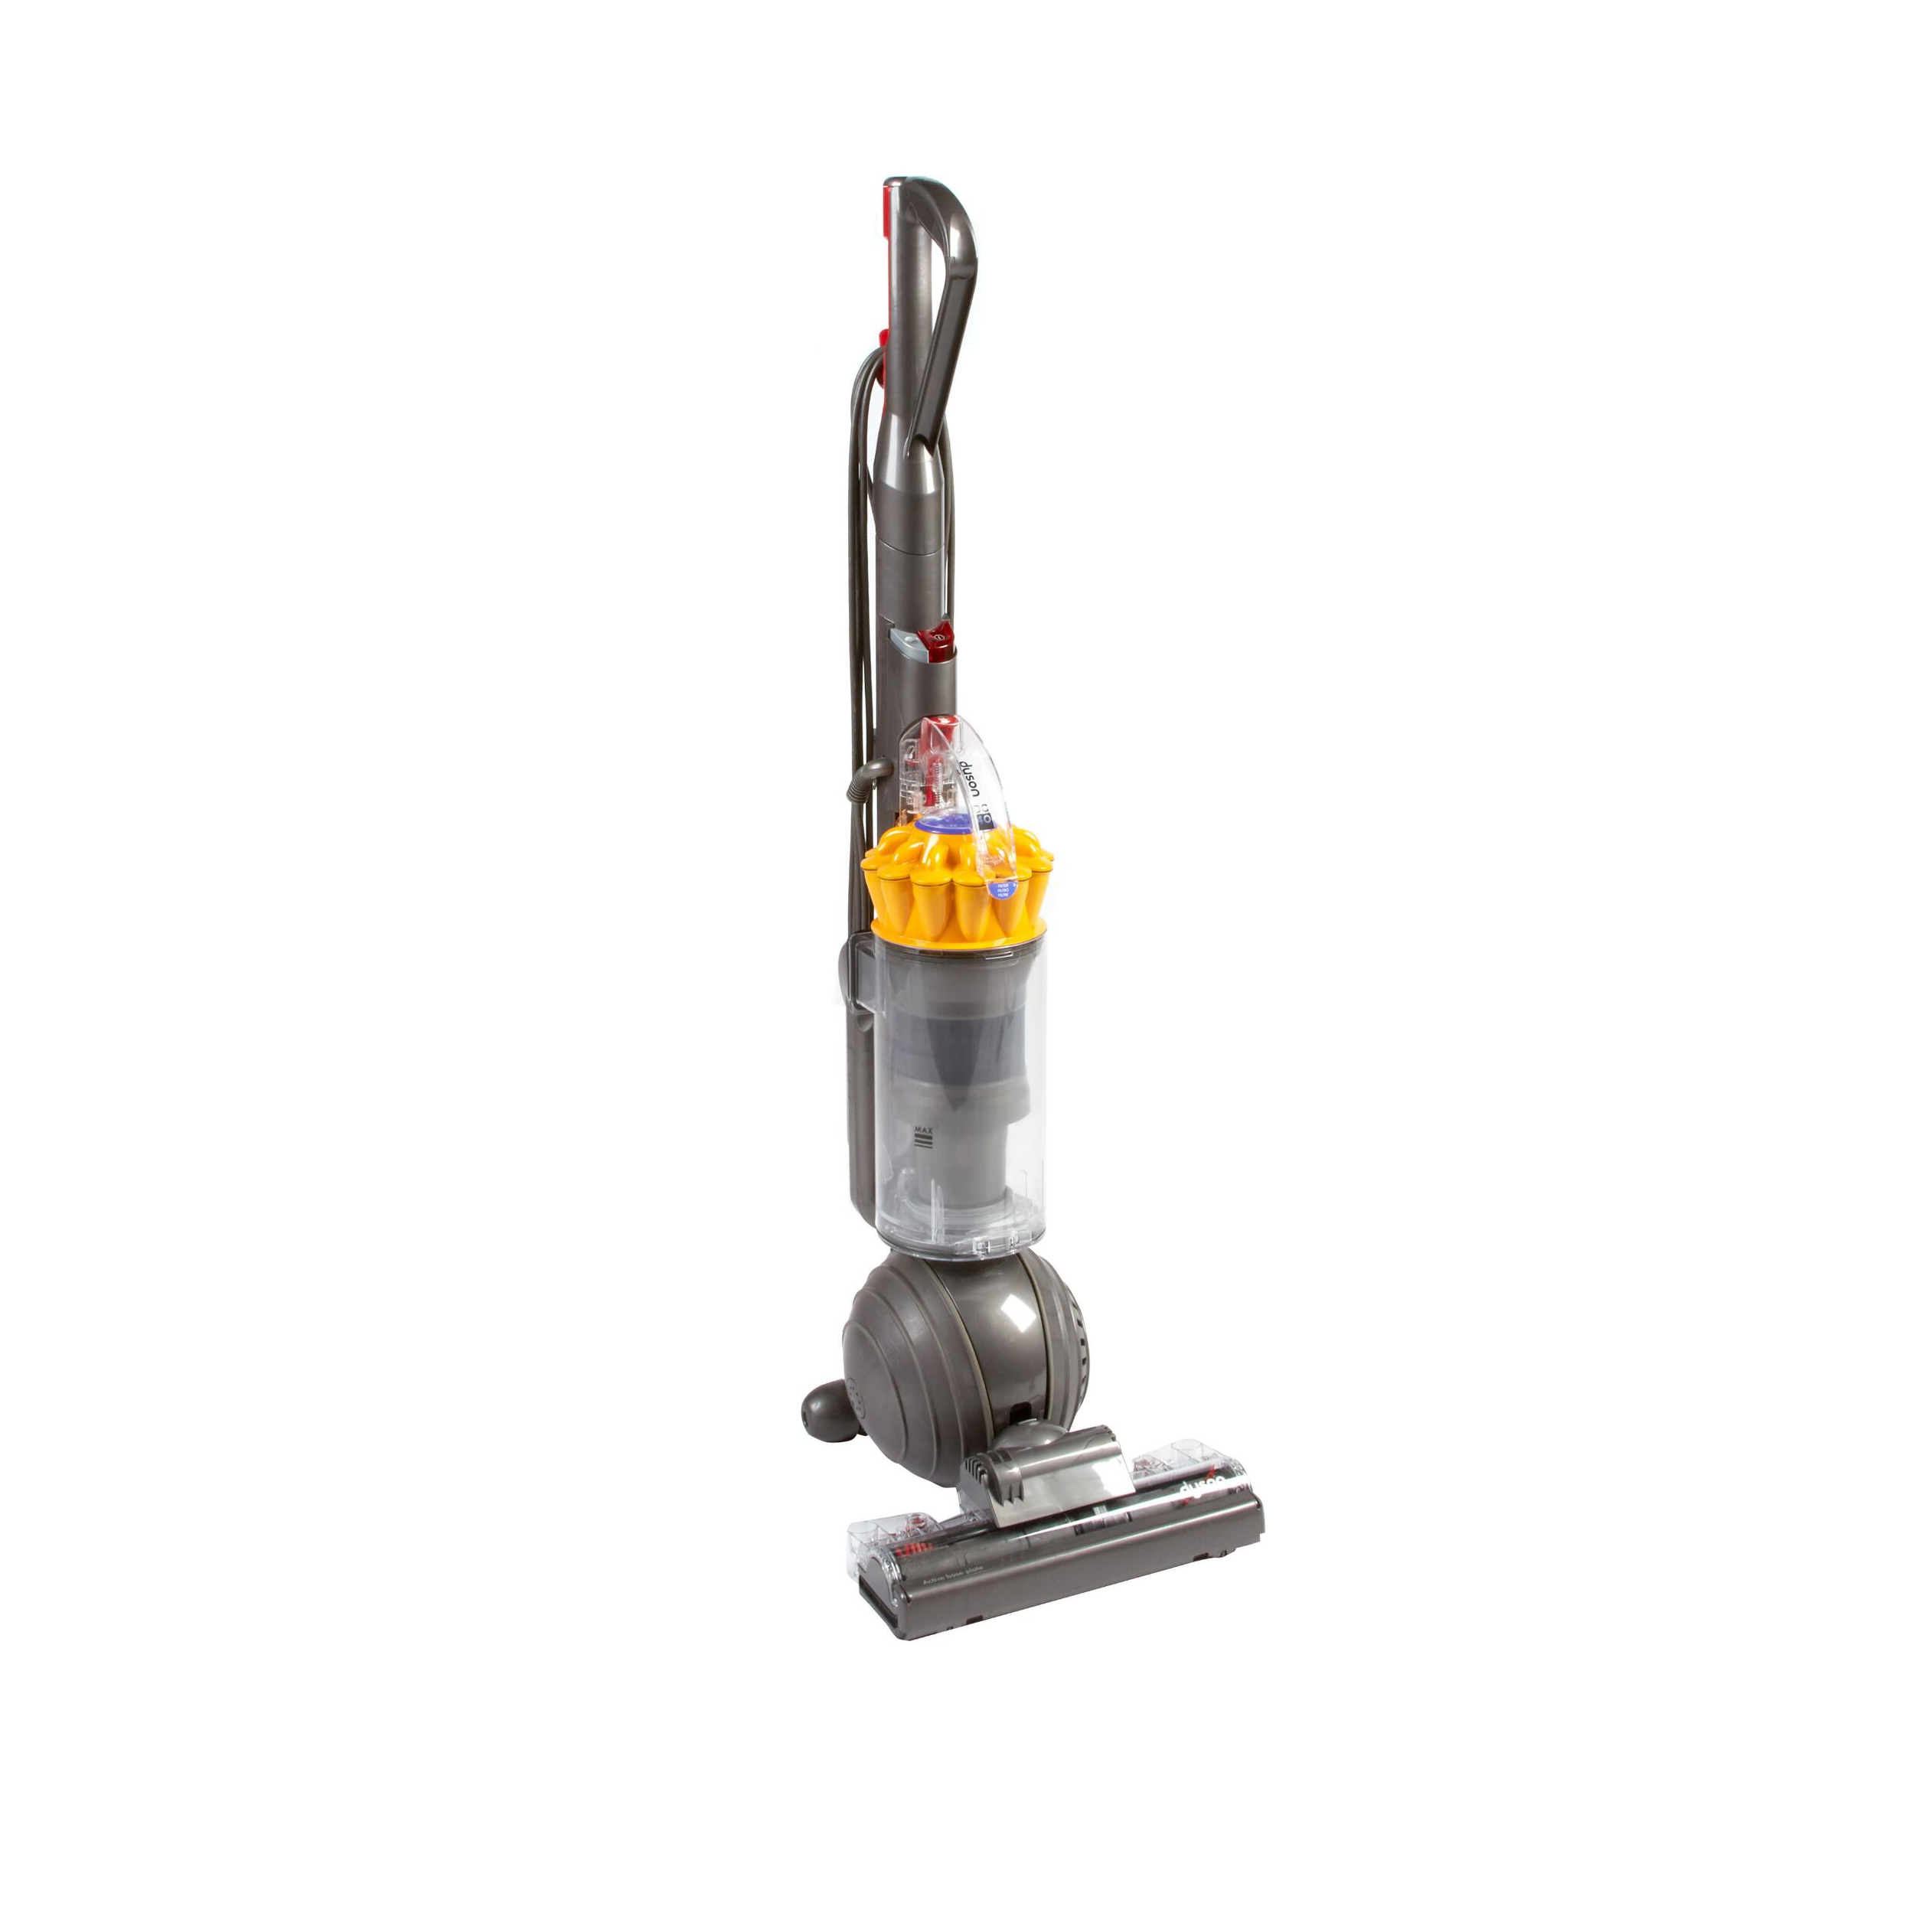 dyson vacuum watch youtube cleaner floor upright multi ball